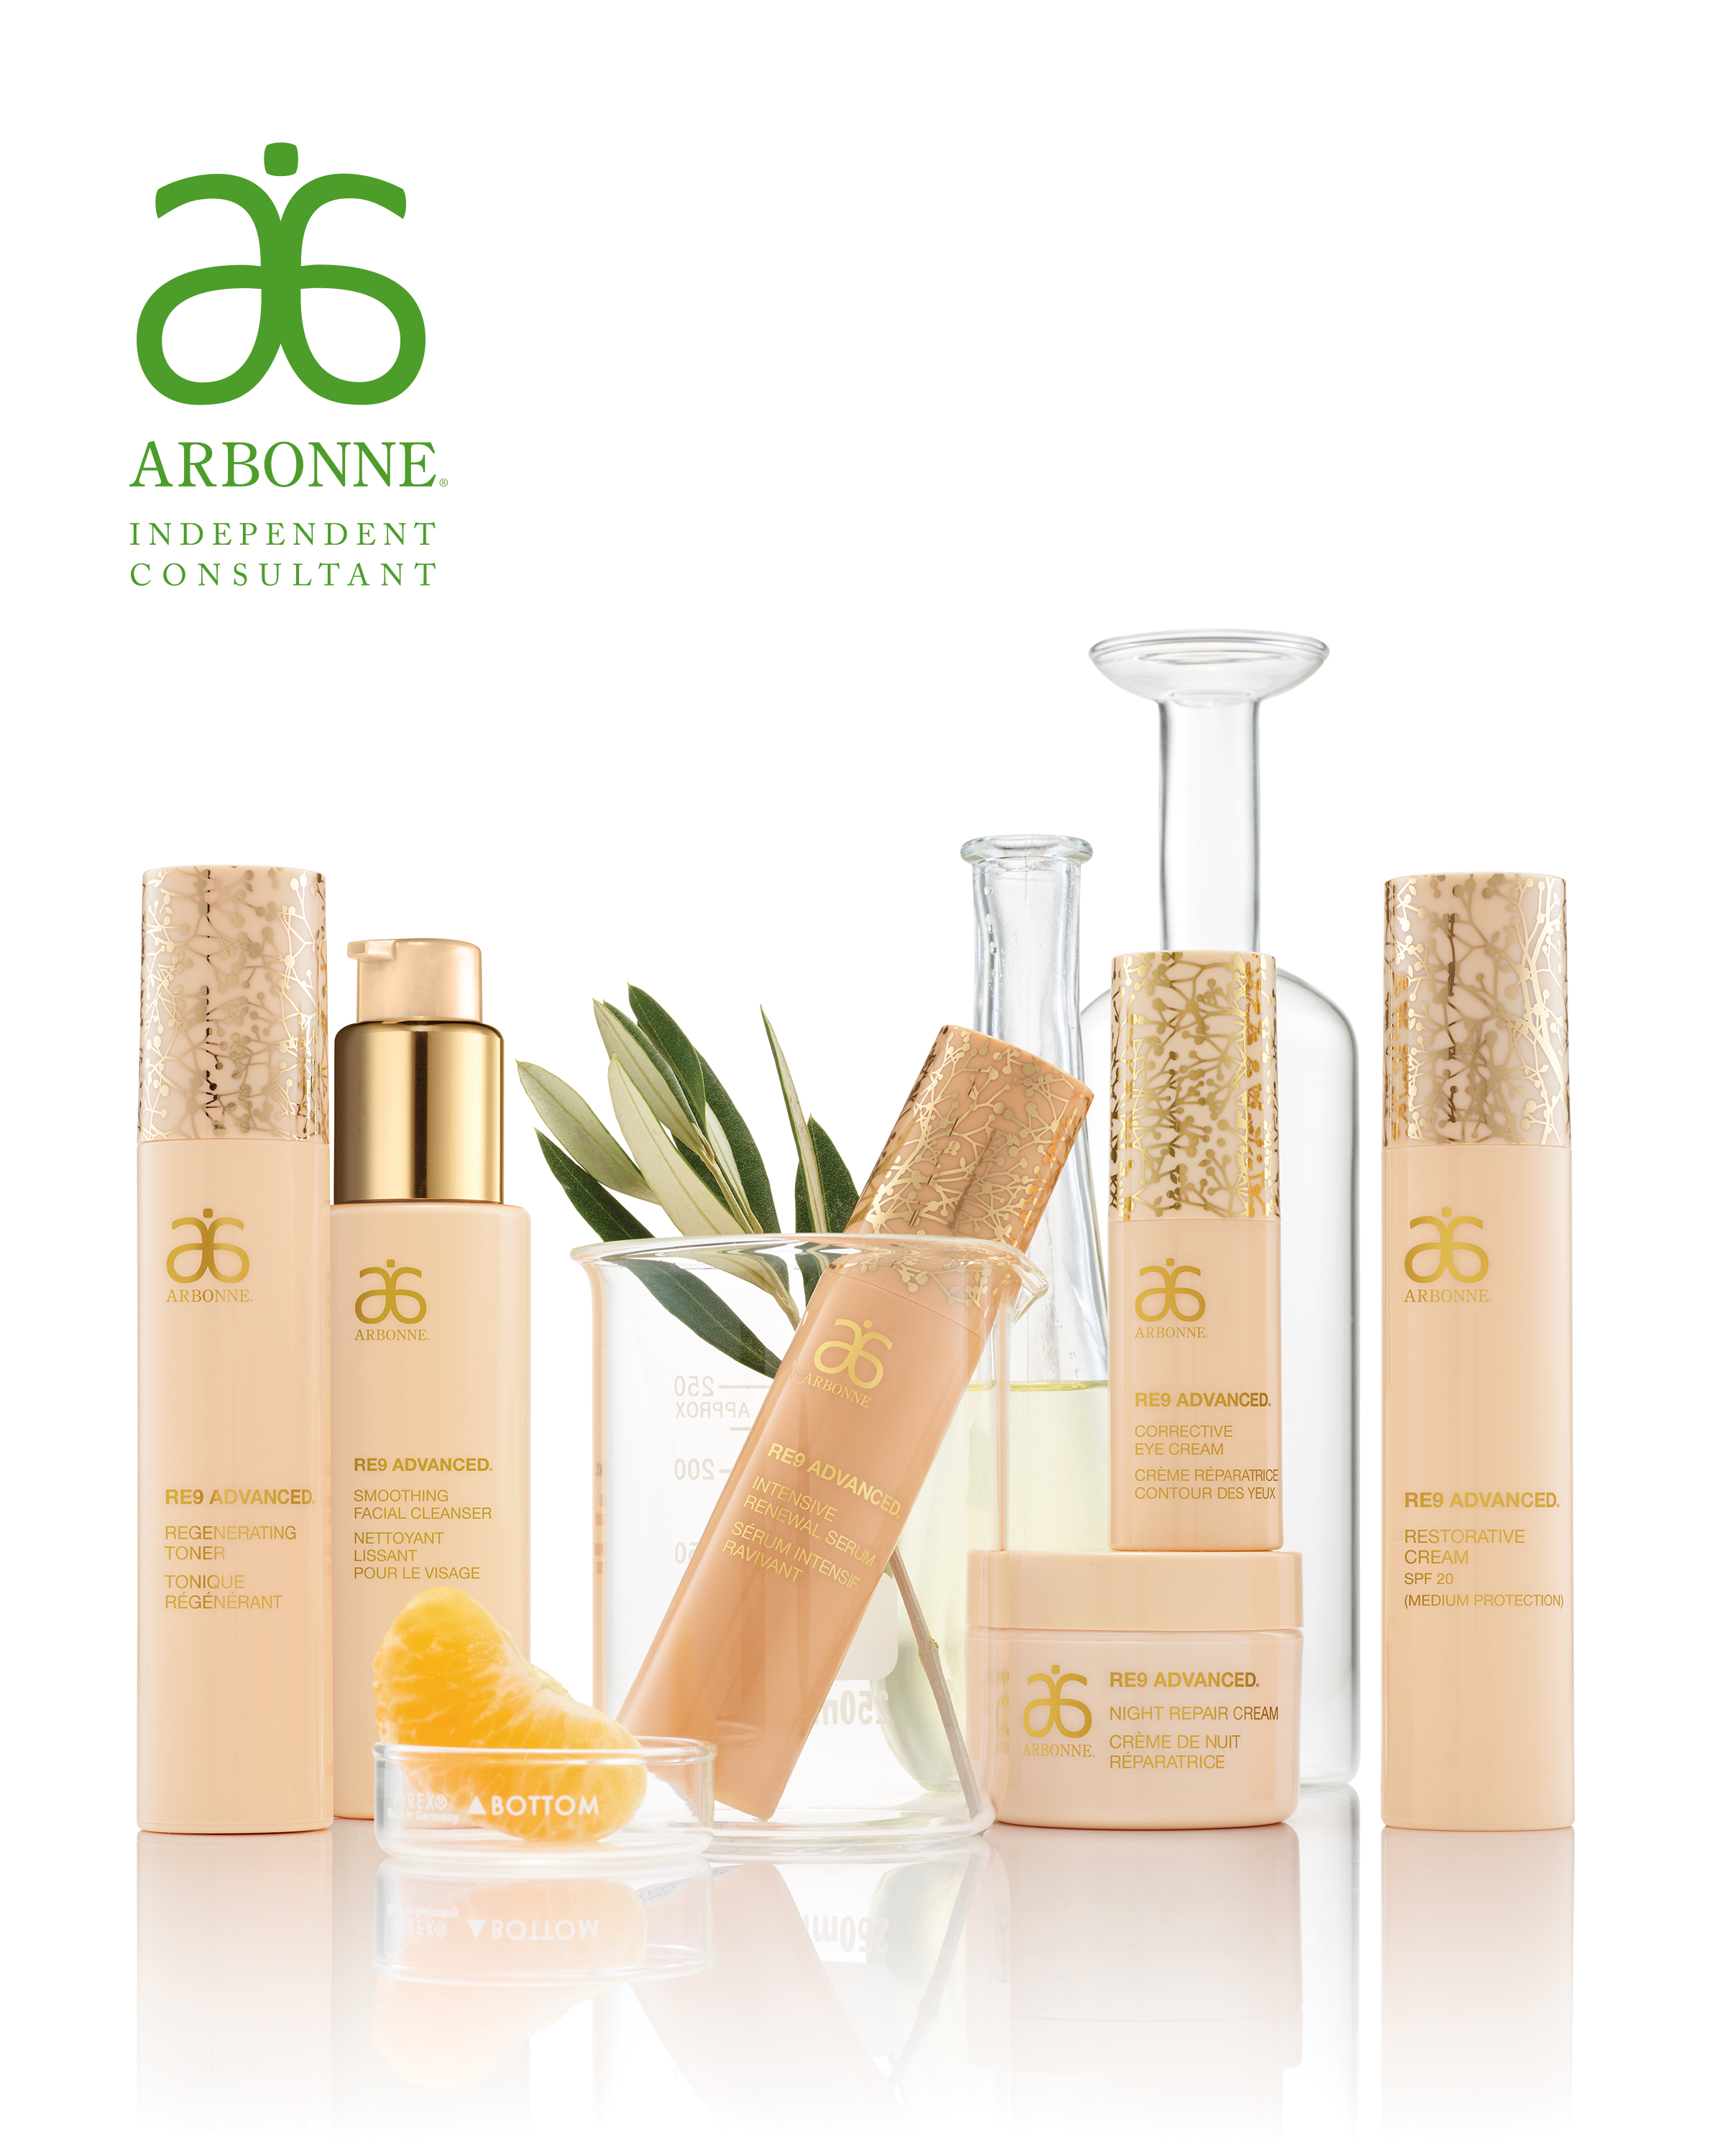 Arbonne Products & Shop | The Green Room Bournemouth